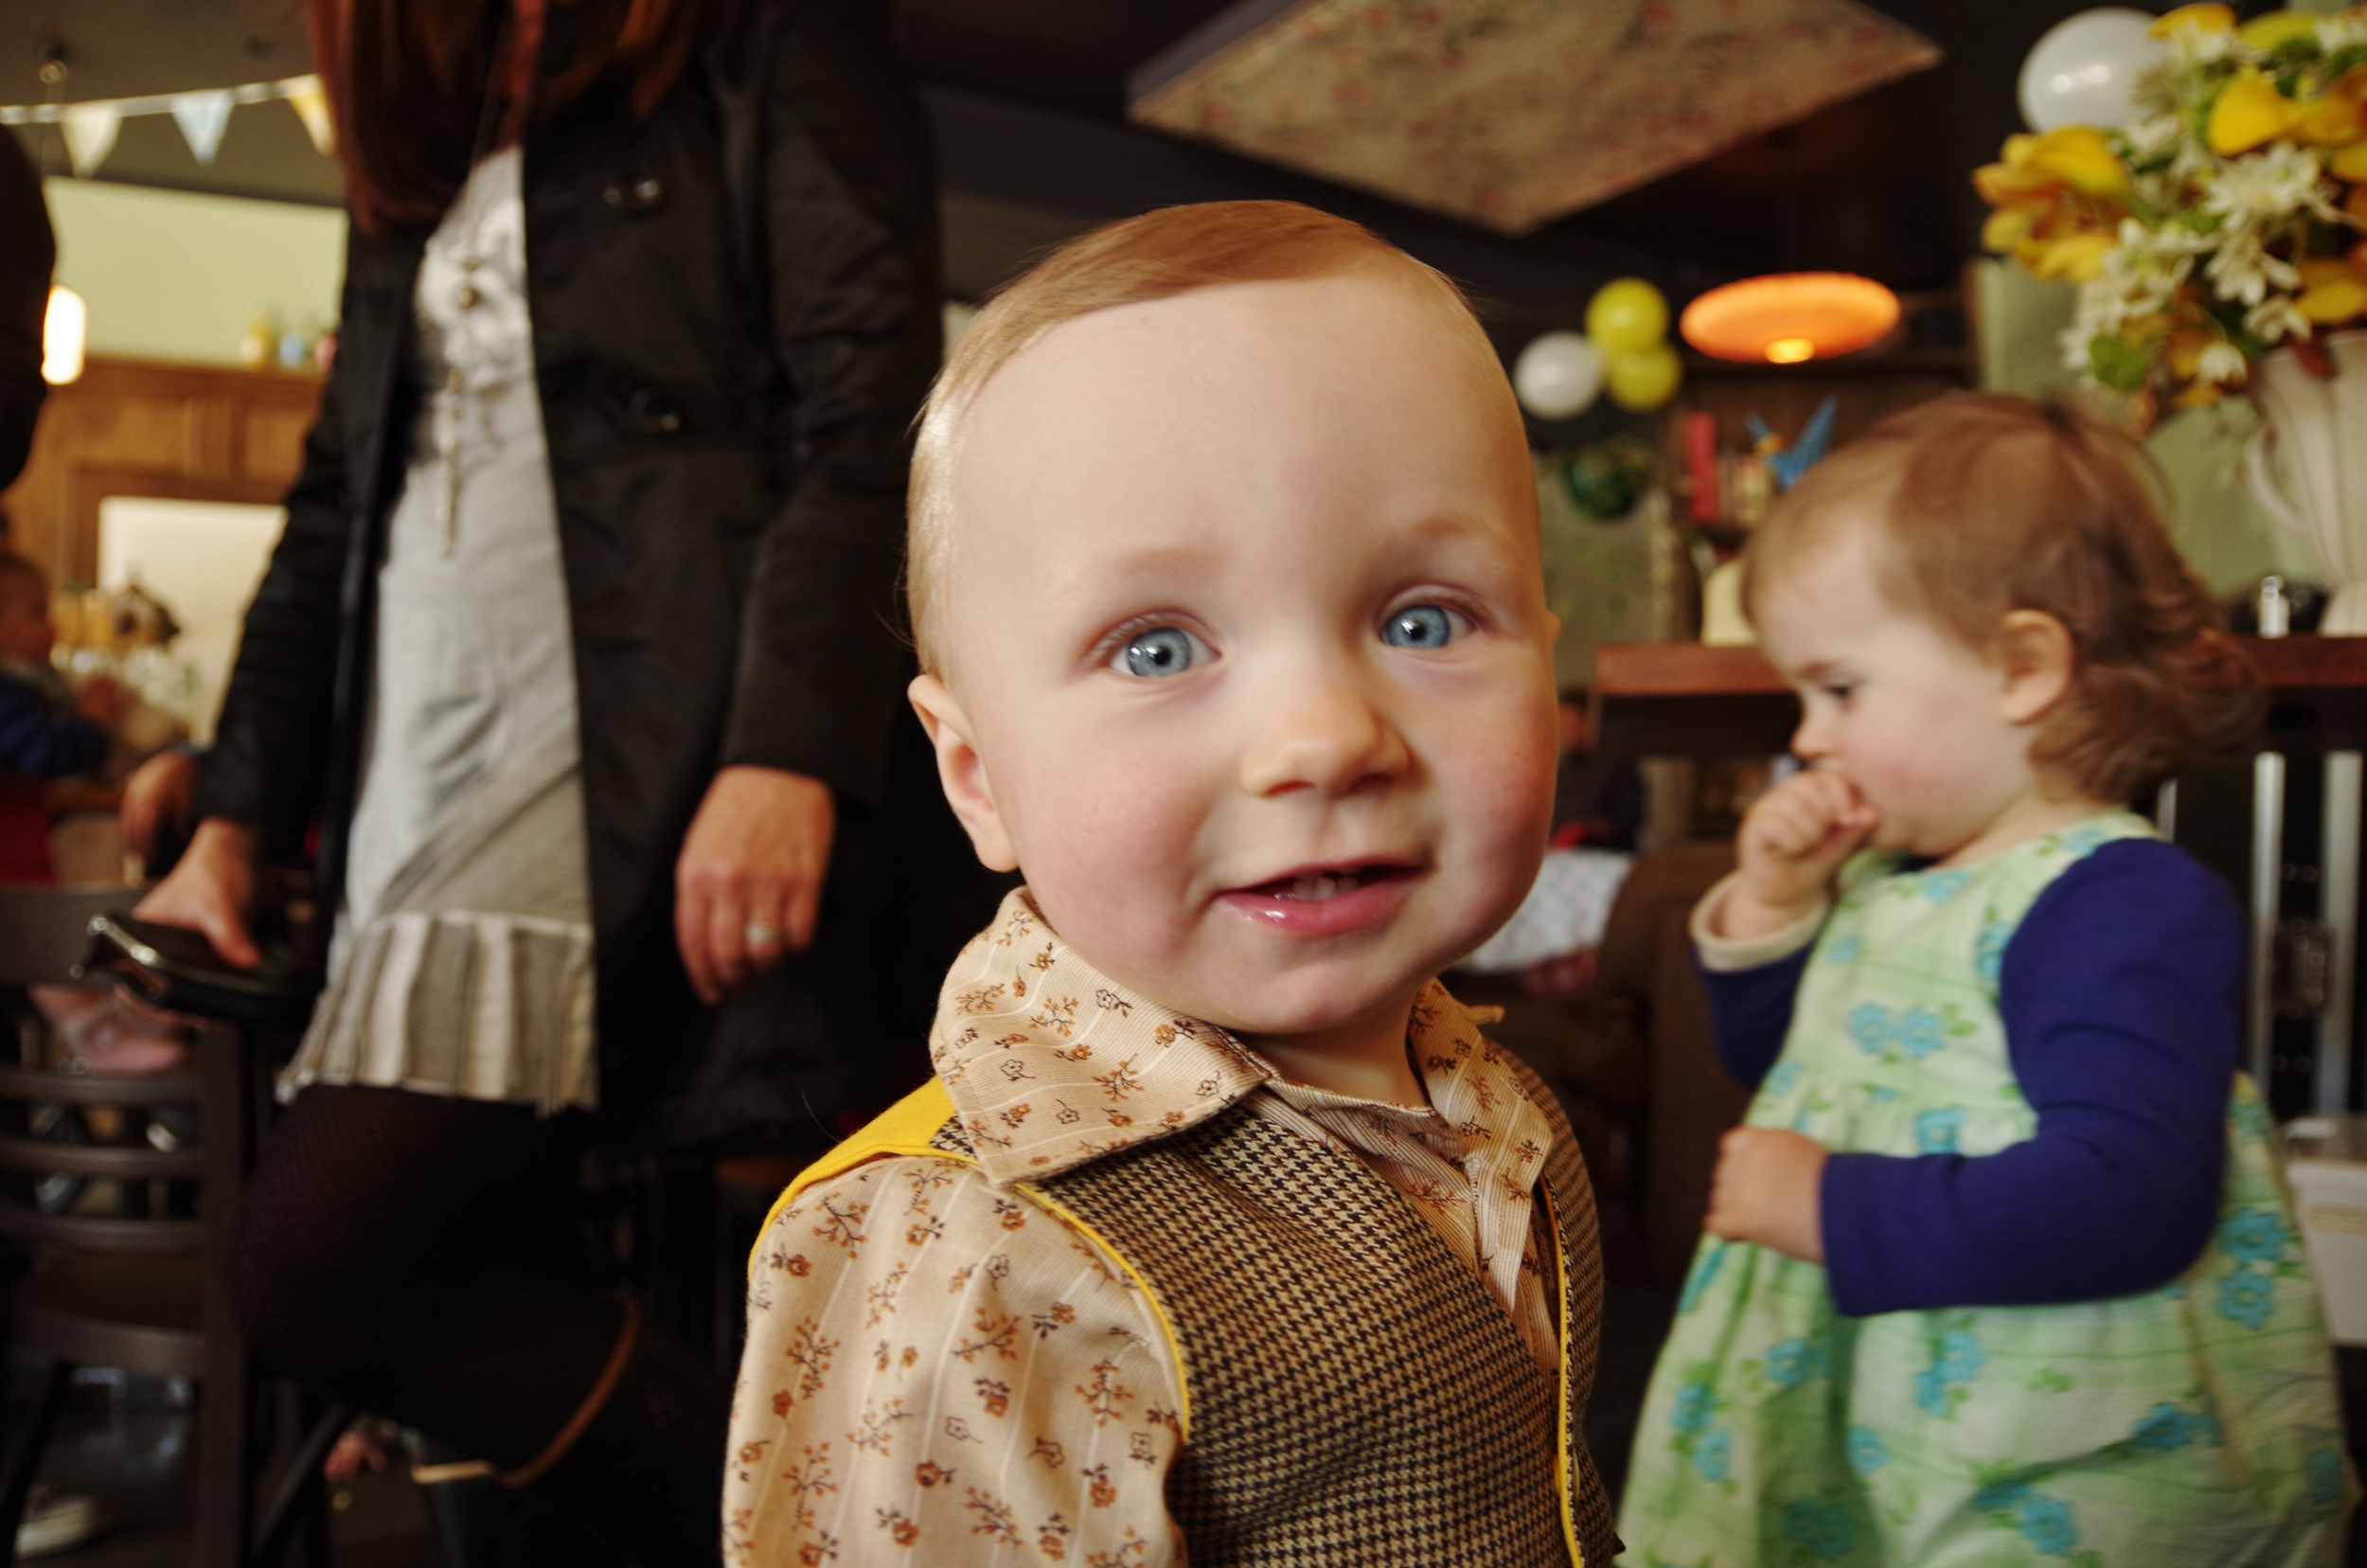 My sweet little guy on his first birthday. Sorry you were a little bit overshadowed—next year we'll be sure not to hijack your birthday party with a surprise wedding!